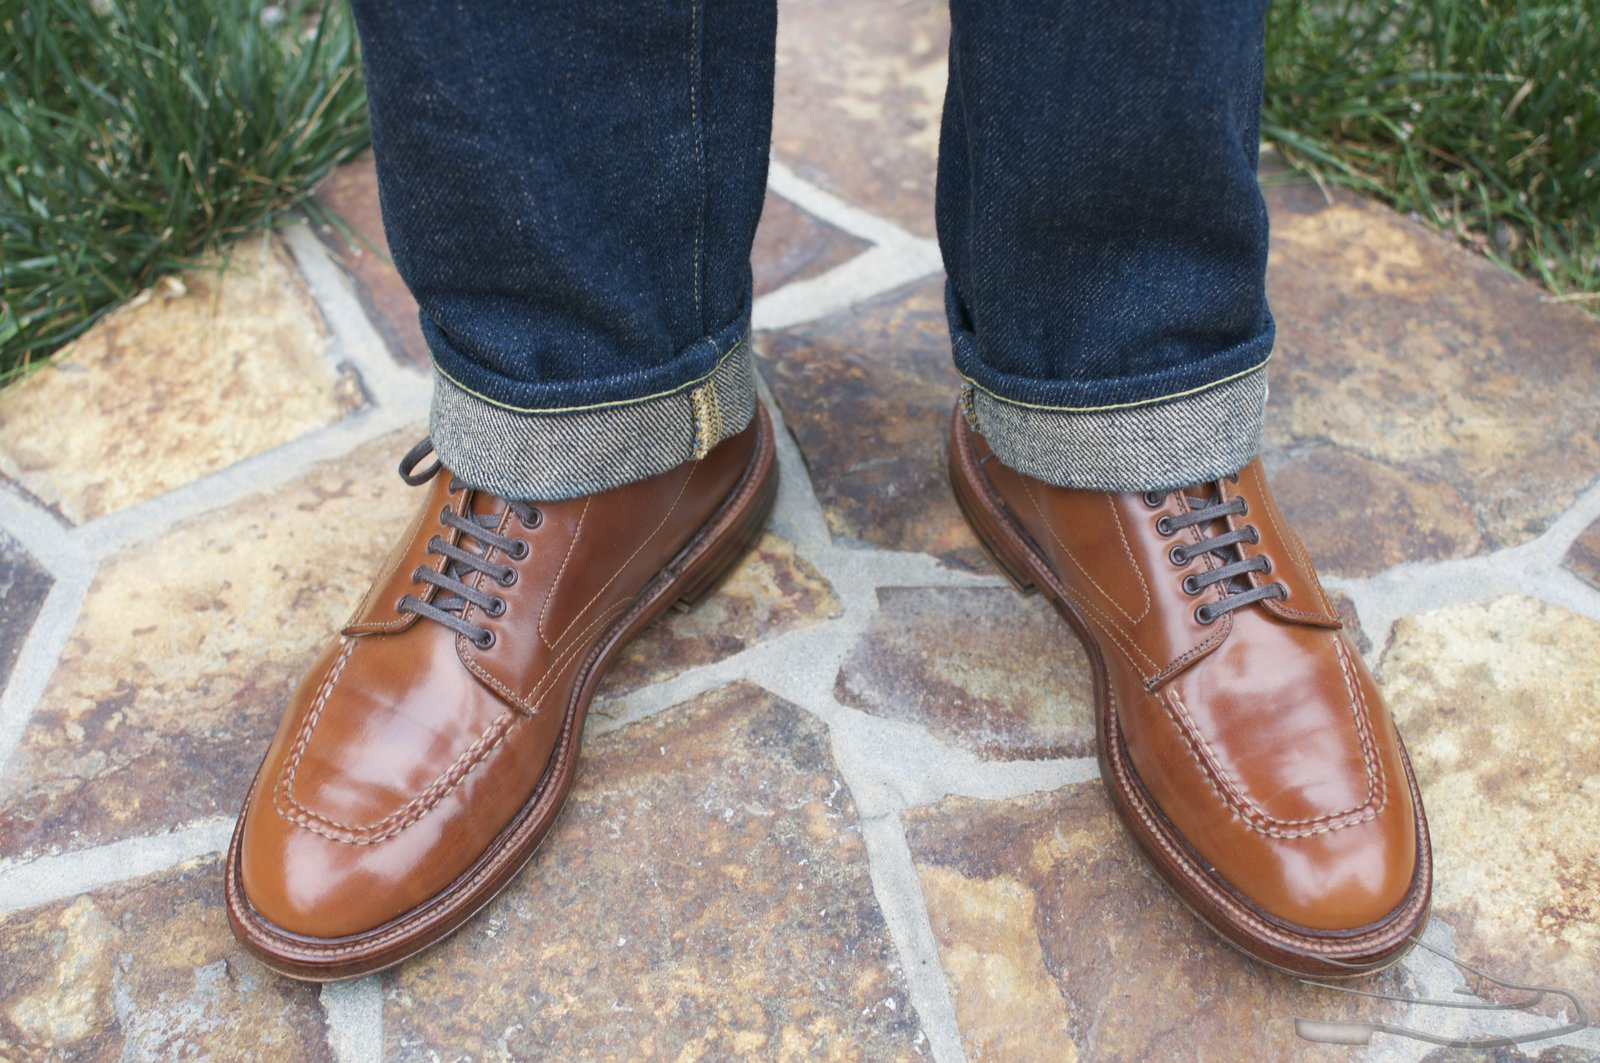 Alden Whiskey Shell Cordovan Indy Boots - 2021-05-13 - 12.jpg